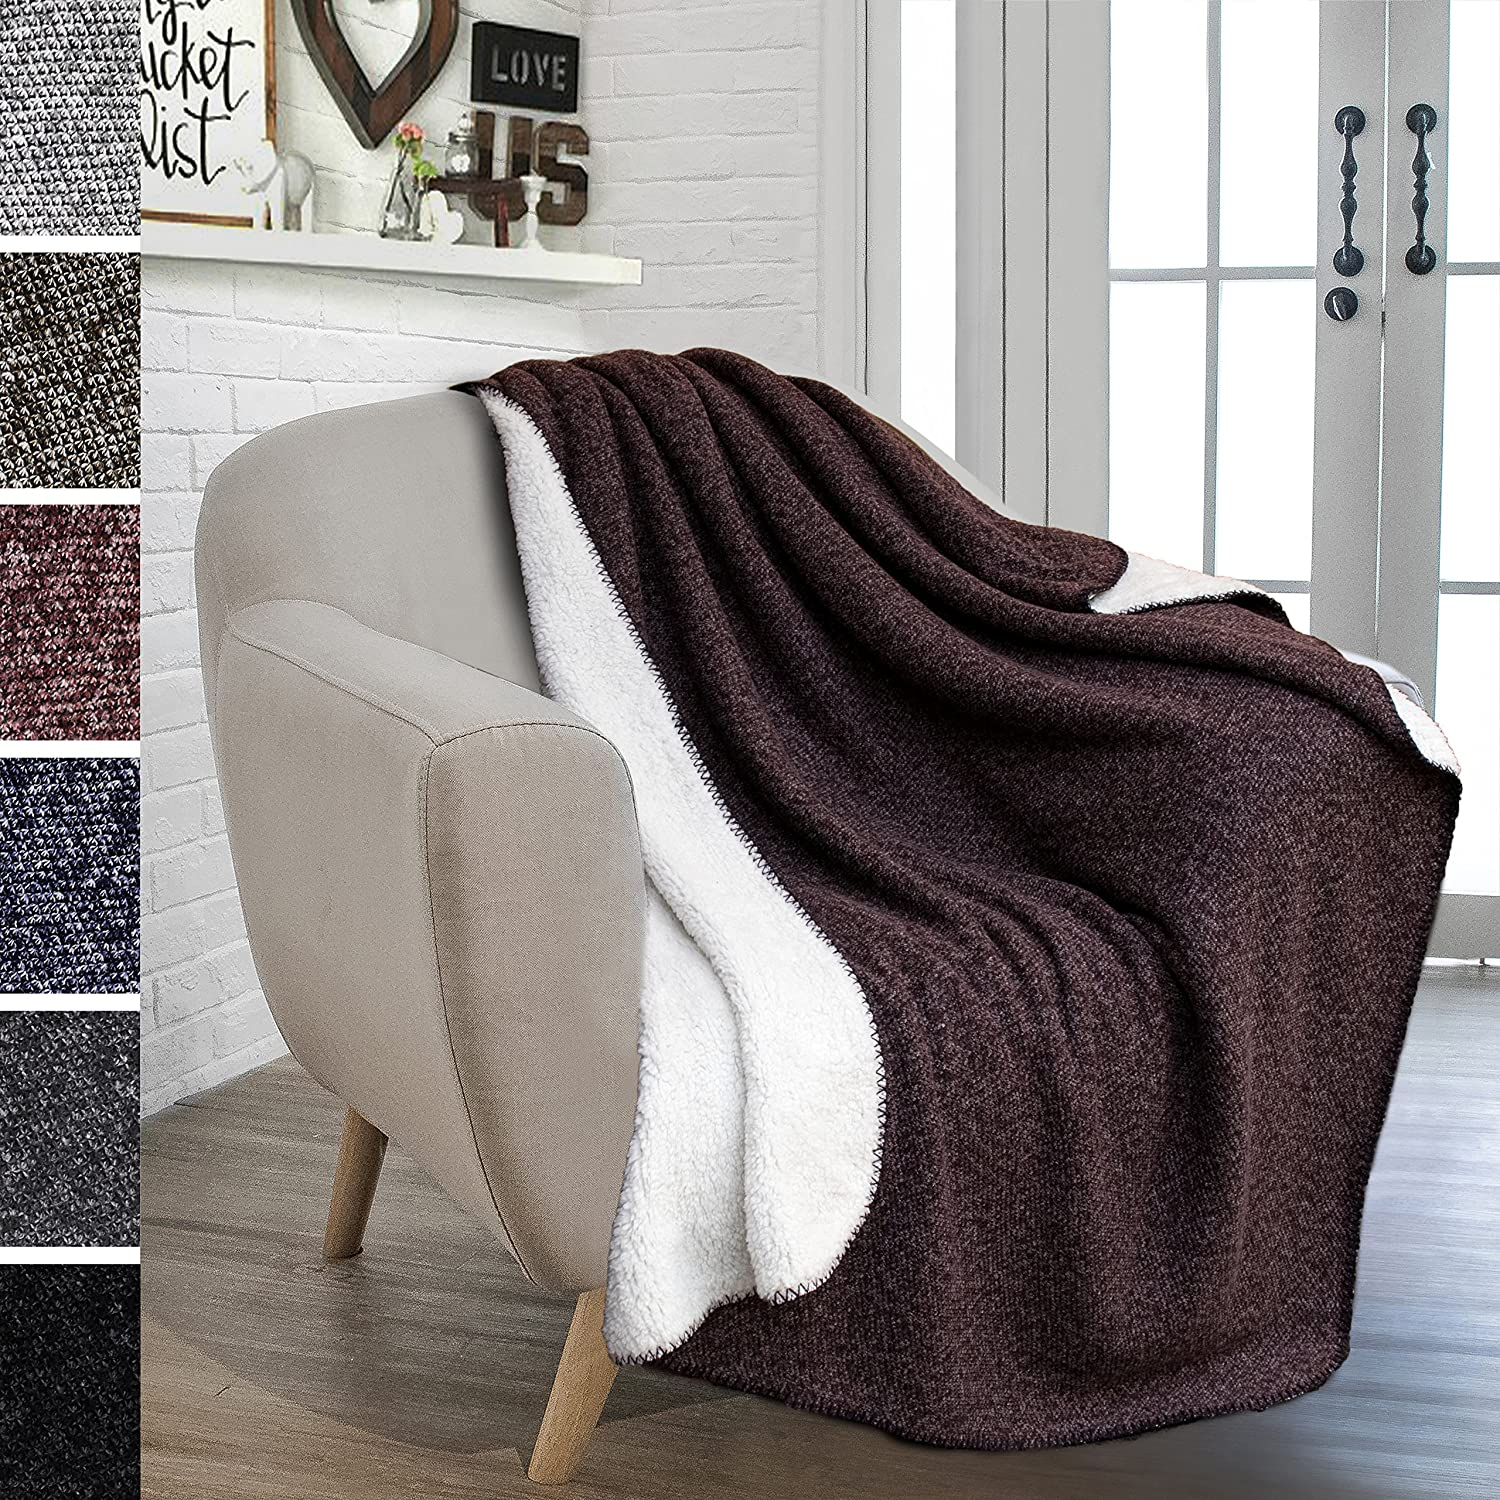 PAVILIA Sherpa Throw Blanket for Couch, Sofa, Chair